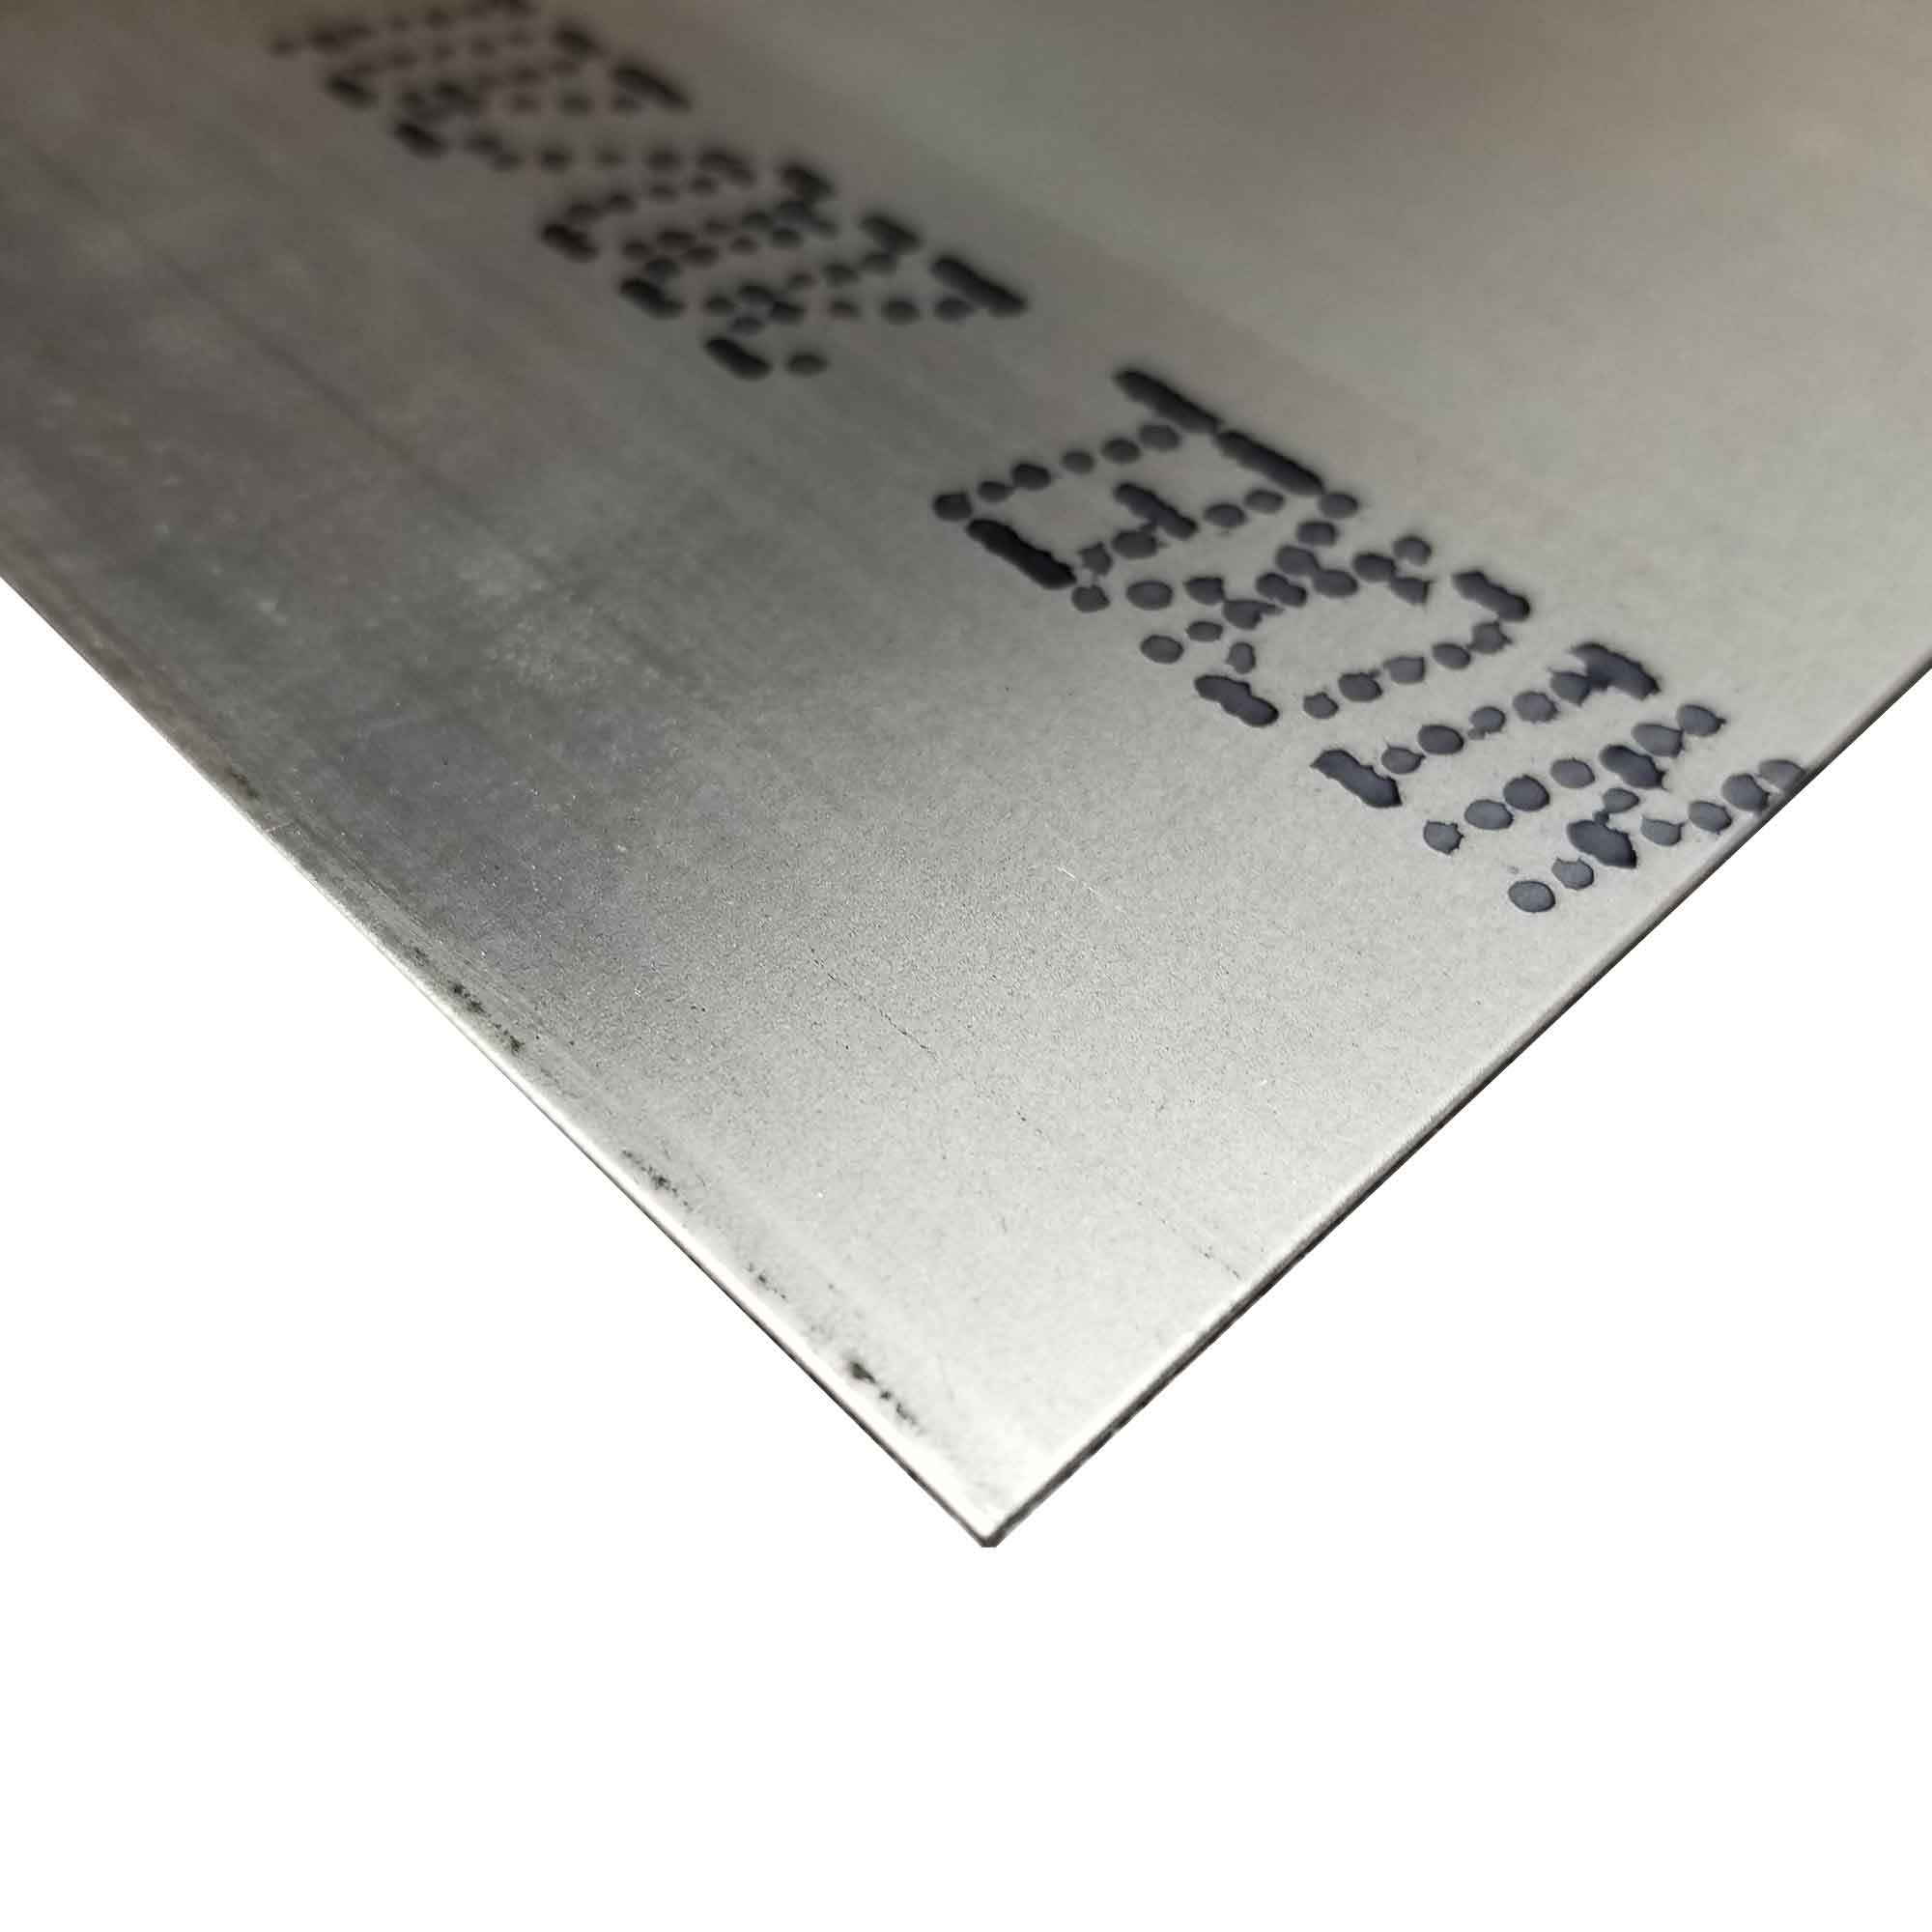 nickel-200-sheet.jpg